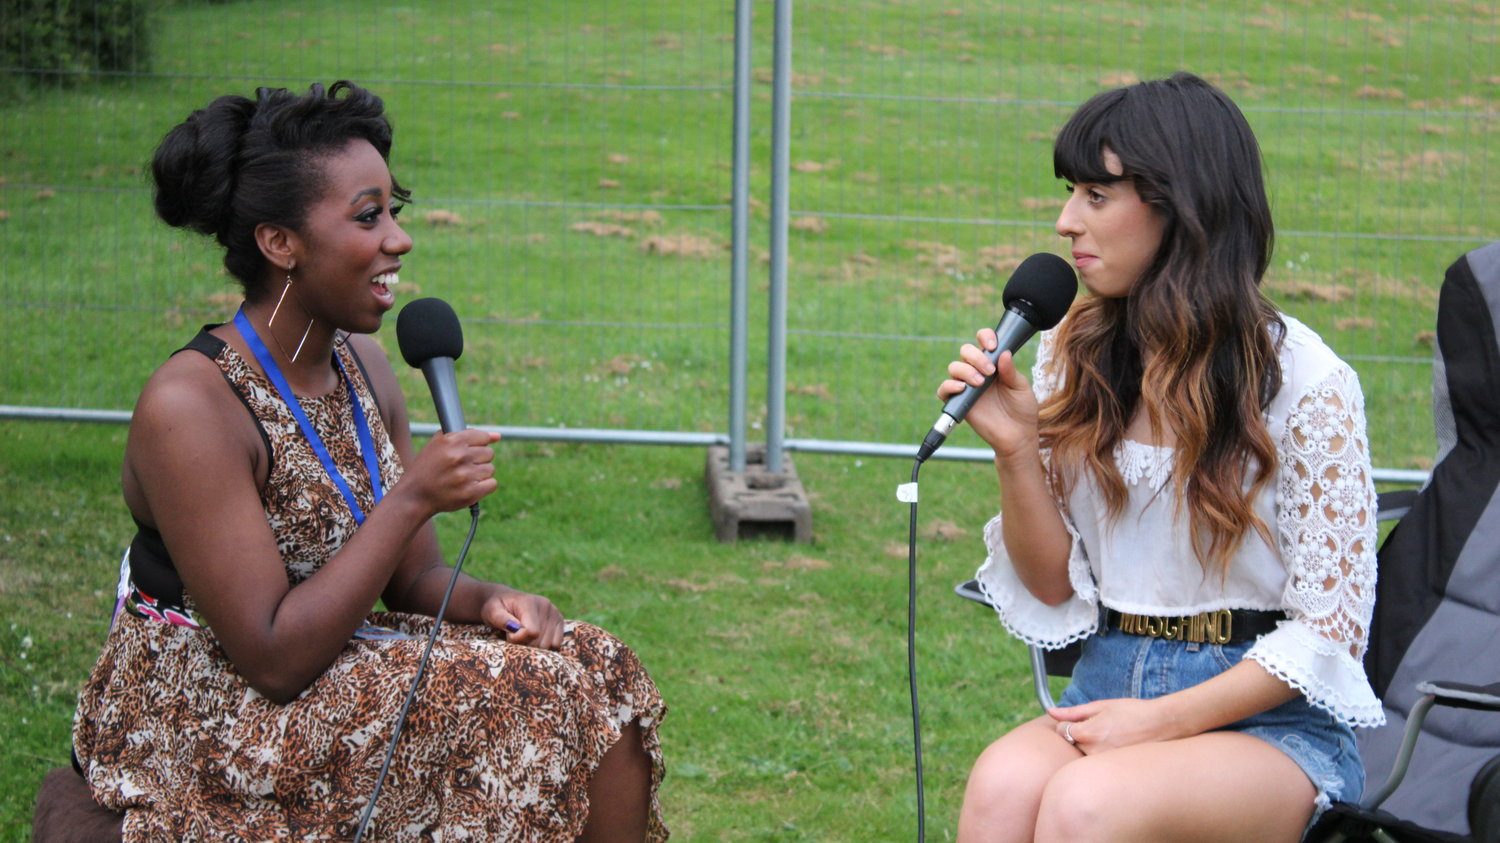 RaW 1251AM's Lauren Holgate talks to Foxes at Warwick University's Free Festival For Undergraduates, The Warwick Summer Party in 2014.